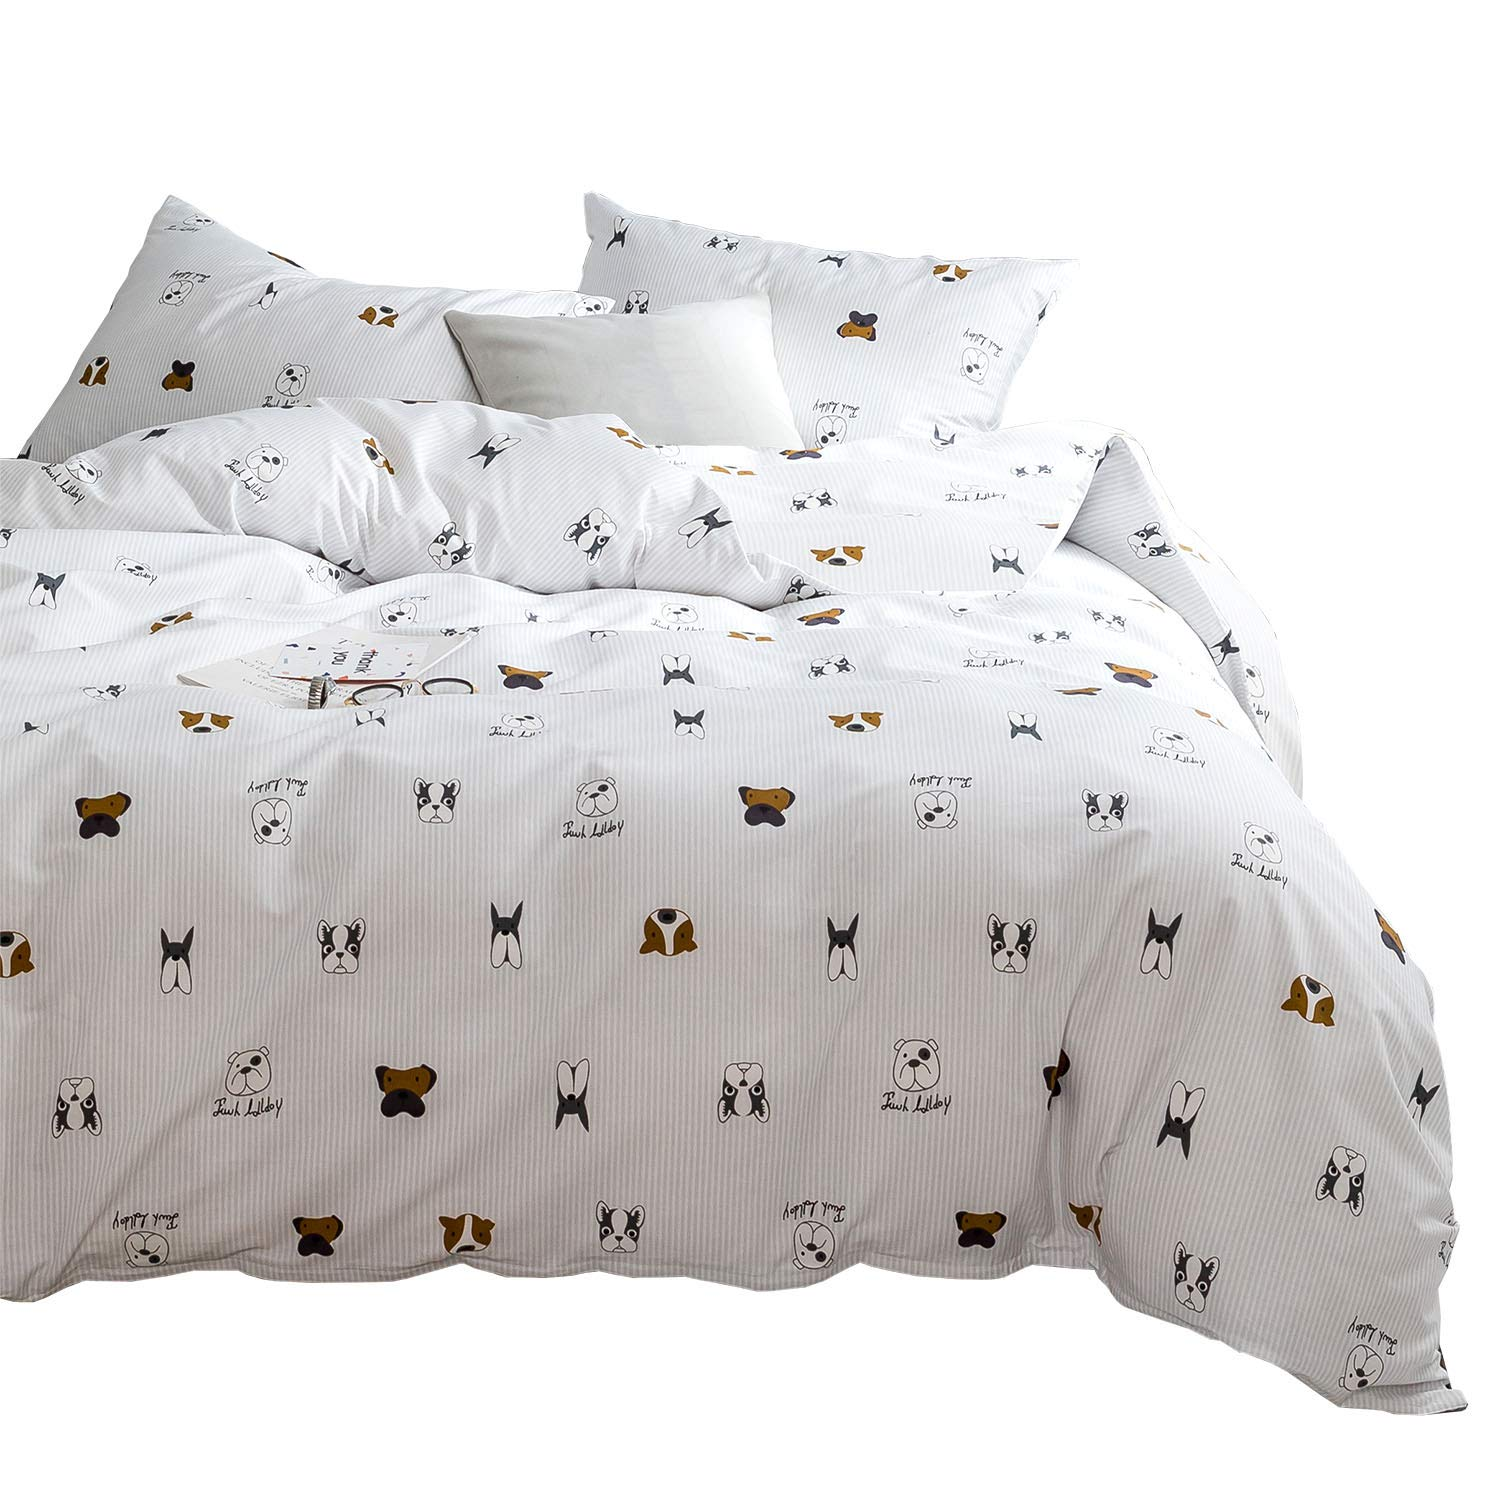 Wake In Cloud - Dogs Comforter Set, 100% Cotton Fabric with Soft Microfiber Fill Bedding, Gray Grey Ticking Striped Stripes Puppy Pattern Printed on White (3pcs, Twin Size)